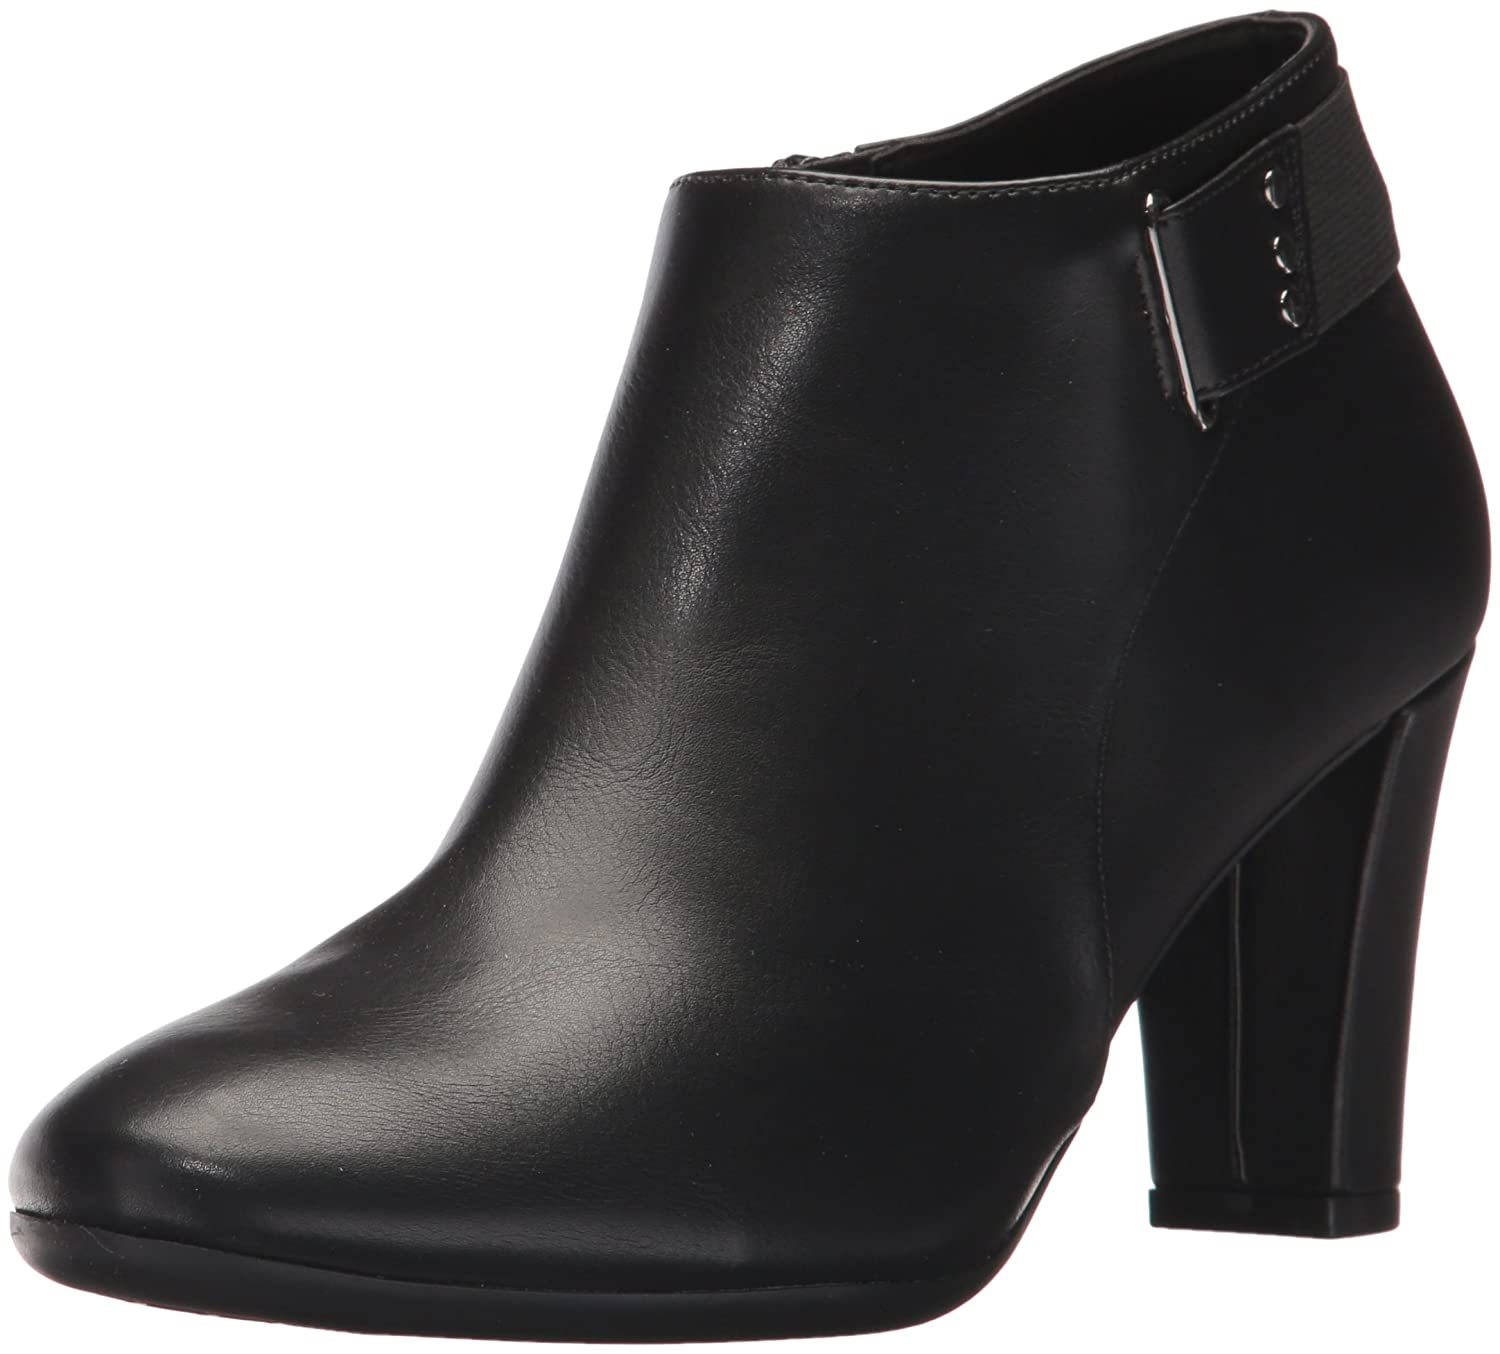 Aerosoles A2 by Women's Honesty Ankle Boot B072FBM312 10.5 M US|Black